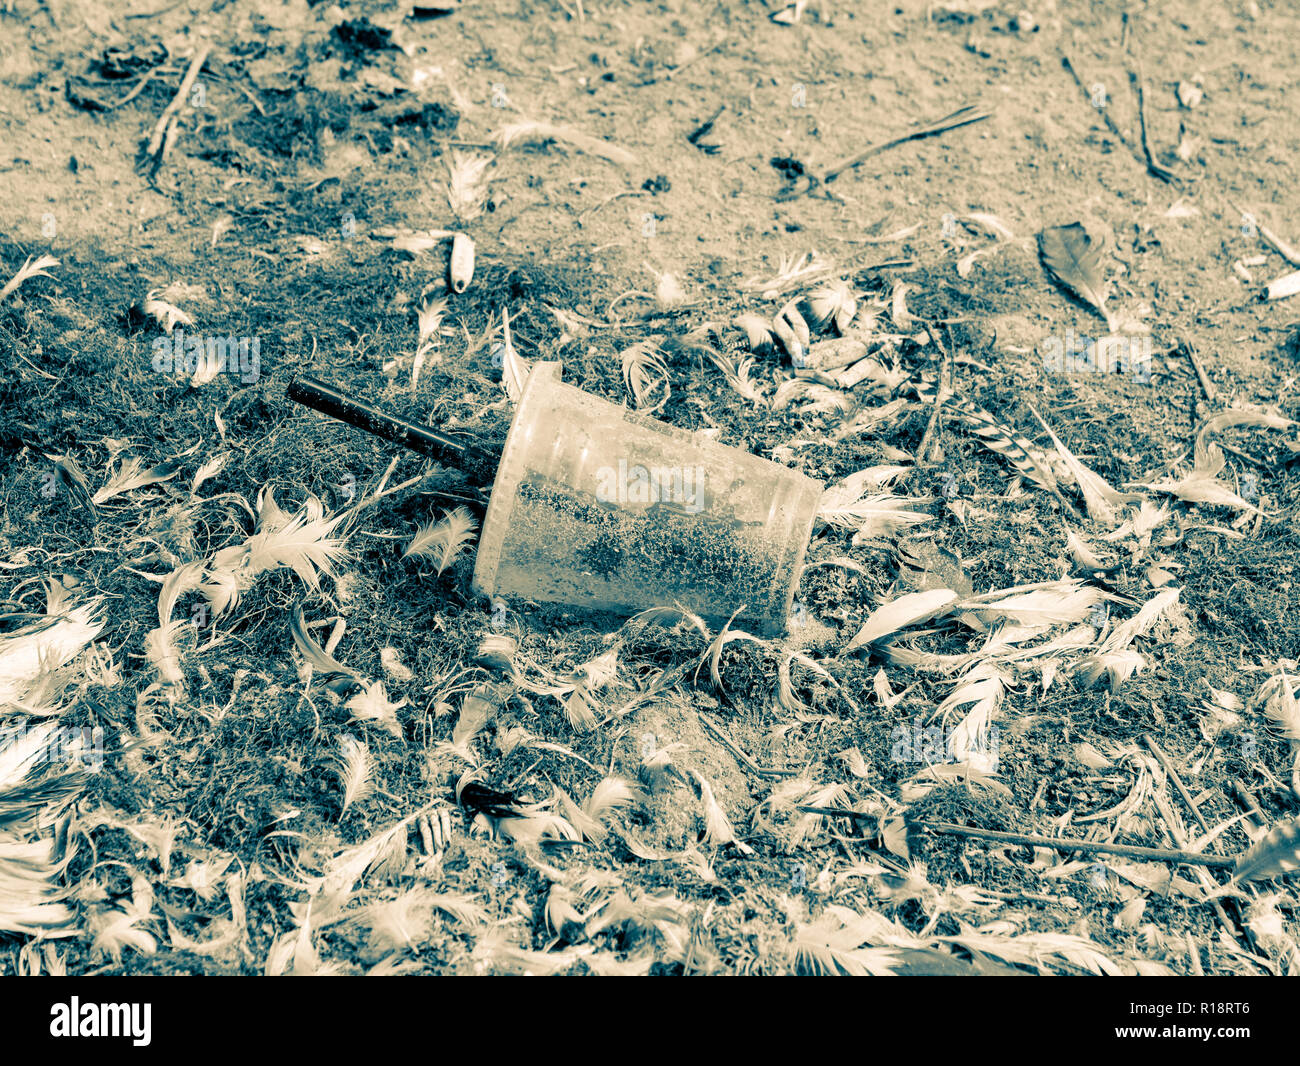 Discarded plastic takeaway cup with straw littering sand of beach between bird feathers, Netherlands - Stock Image